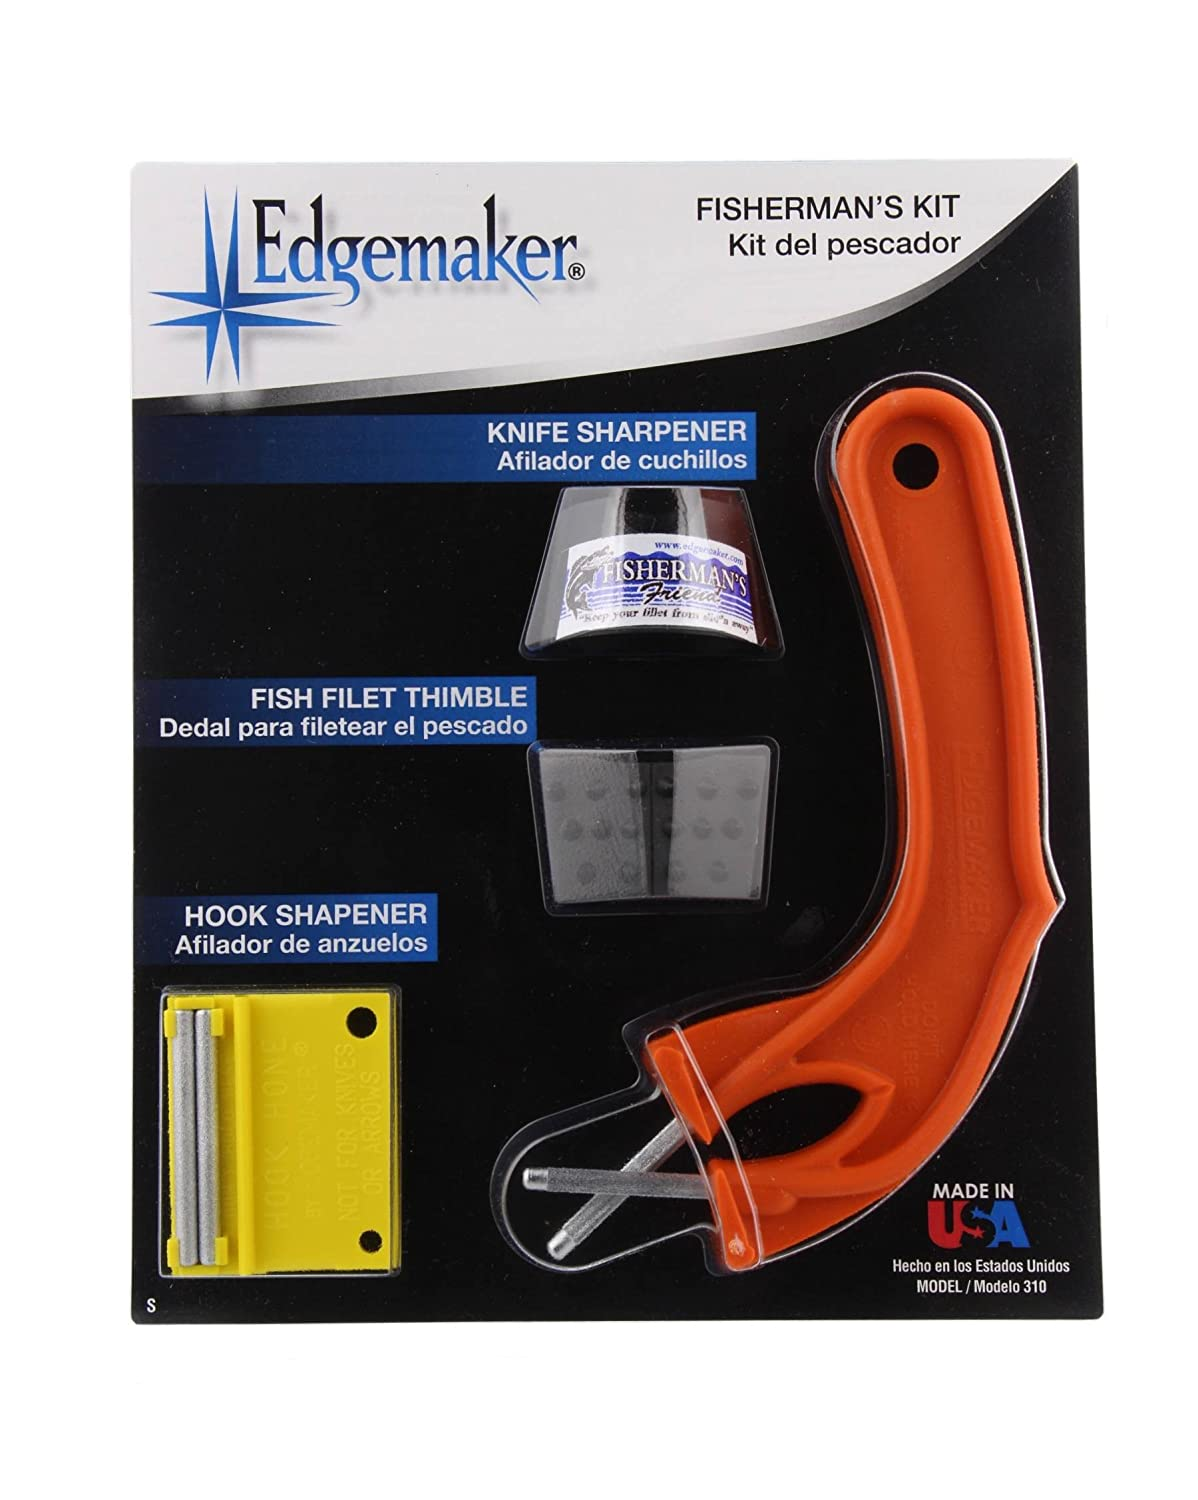 The Edgemaker Fishermans Kit- Sportsman Sharpening Rod 012, Fish Filet Thimble, and Fine Point Hook Sharpener- Perfect for any Fisherman